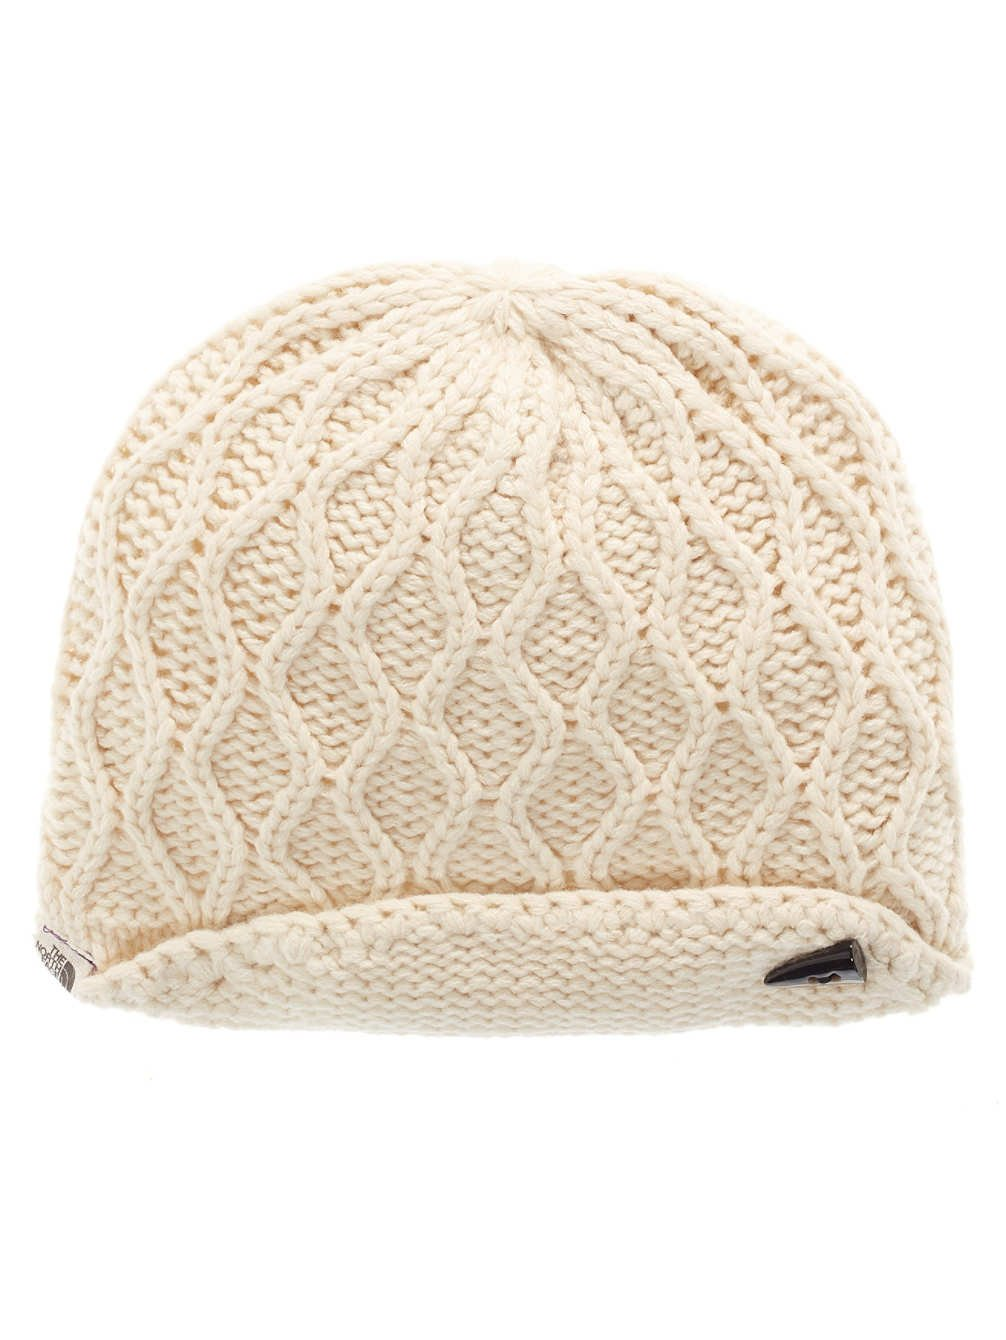 The North Face Side Cable Beanie - Women's Vintage White